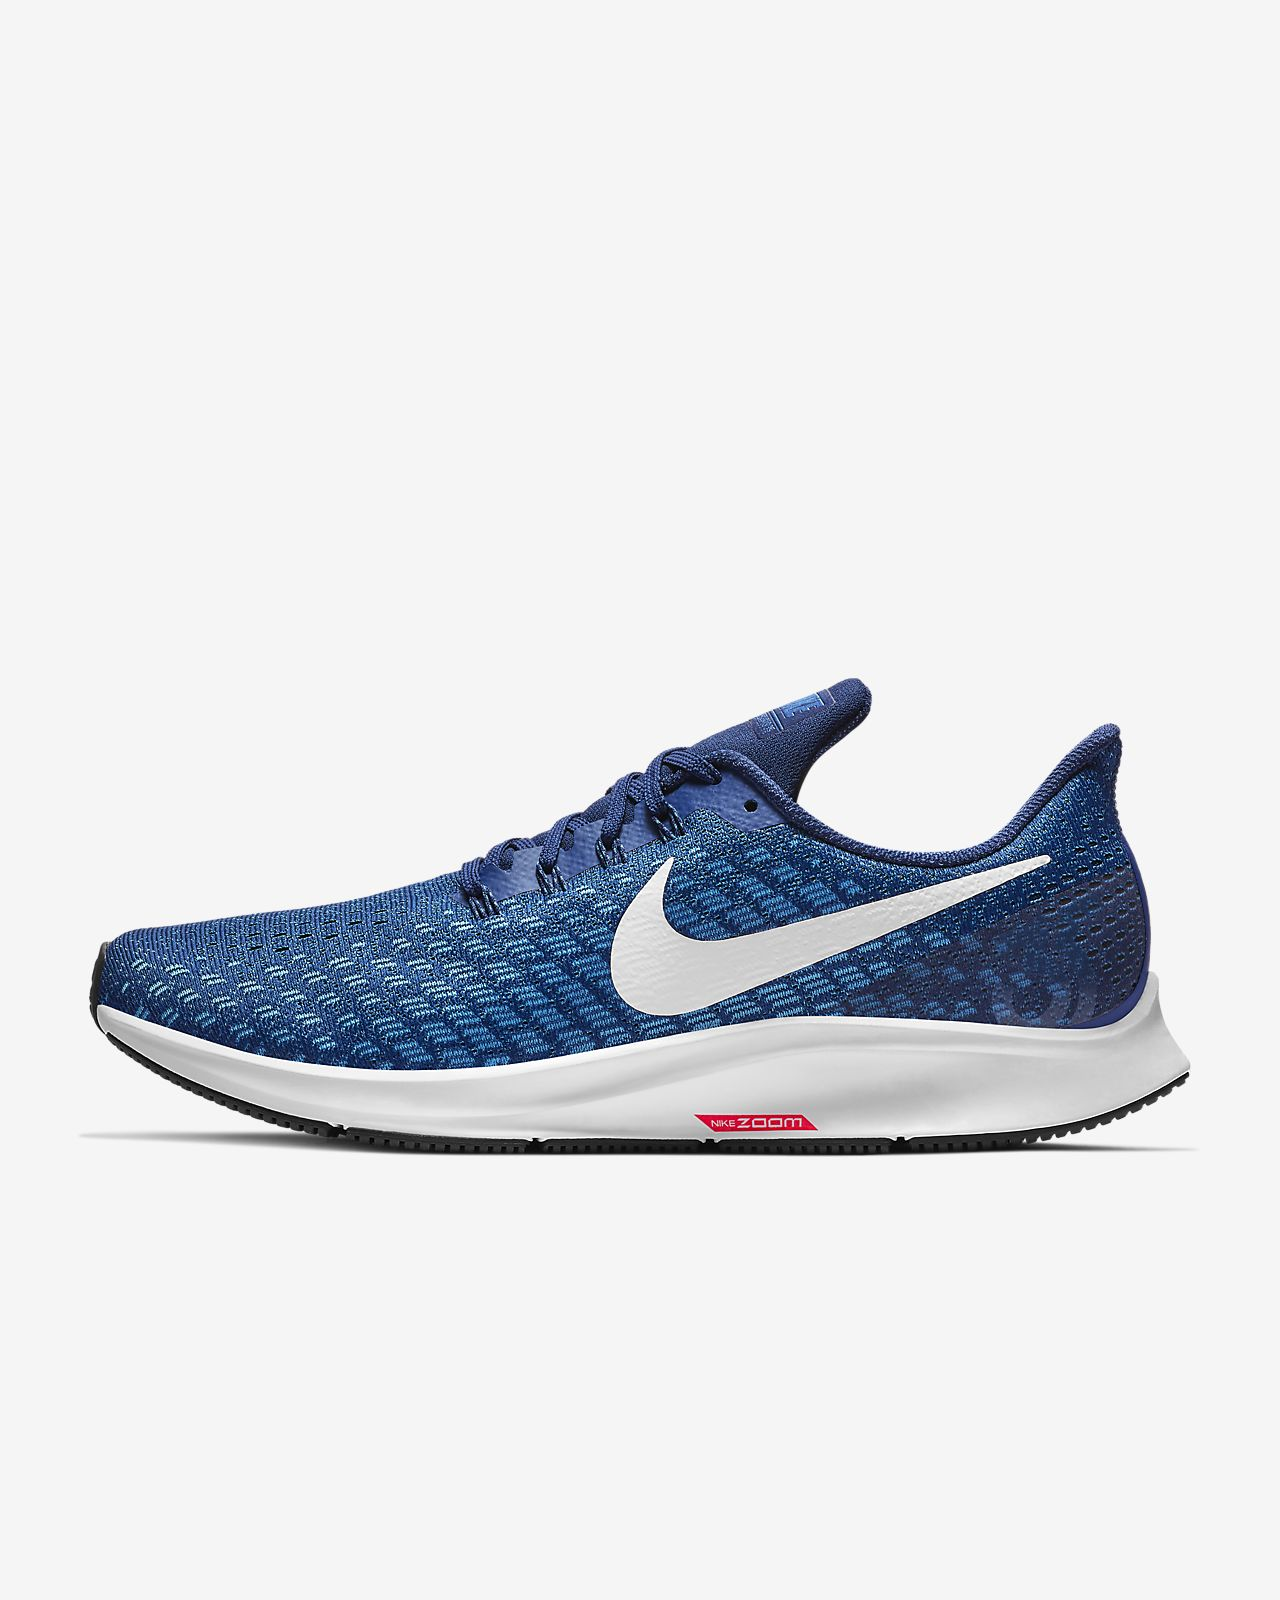 reputable site 900ff f63c6 ... Nike Air Zoom Pegasus 35 Men s Running Shoe